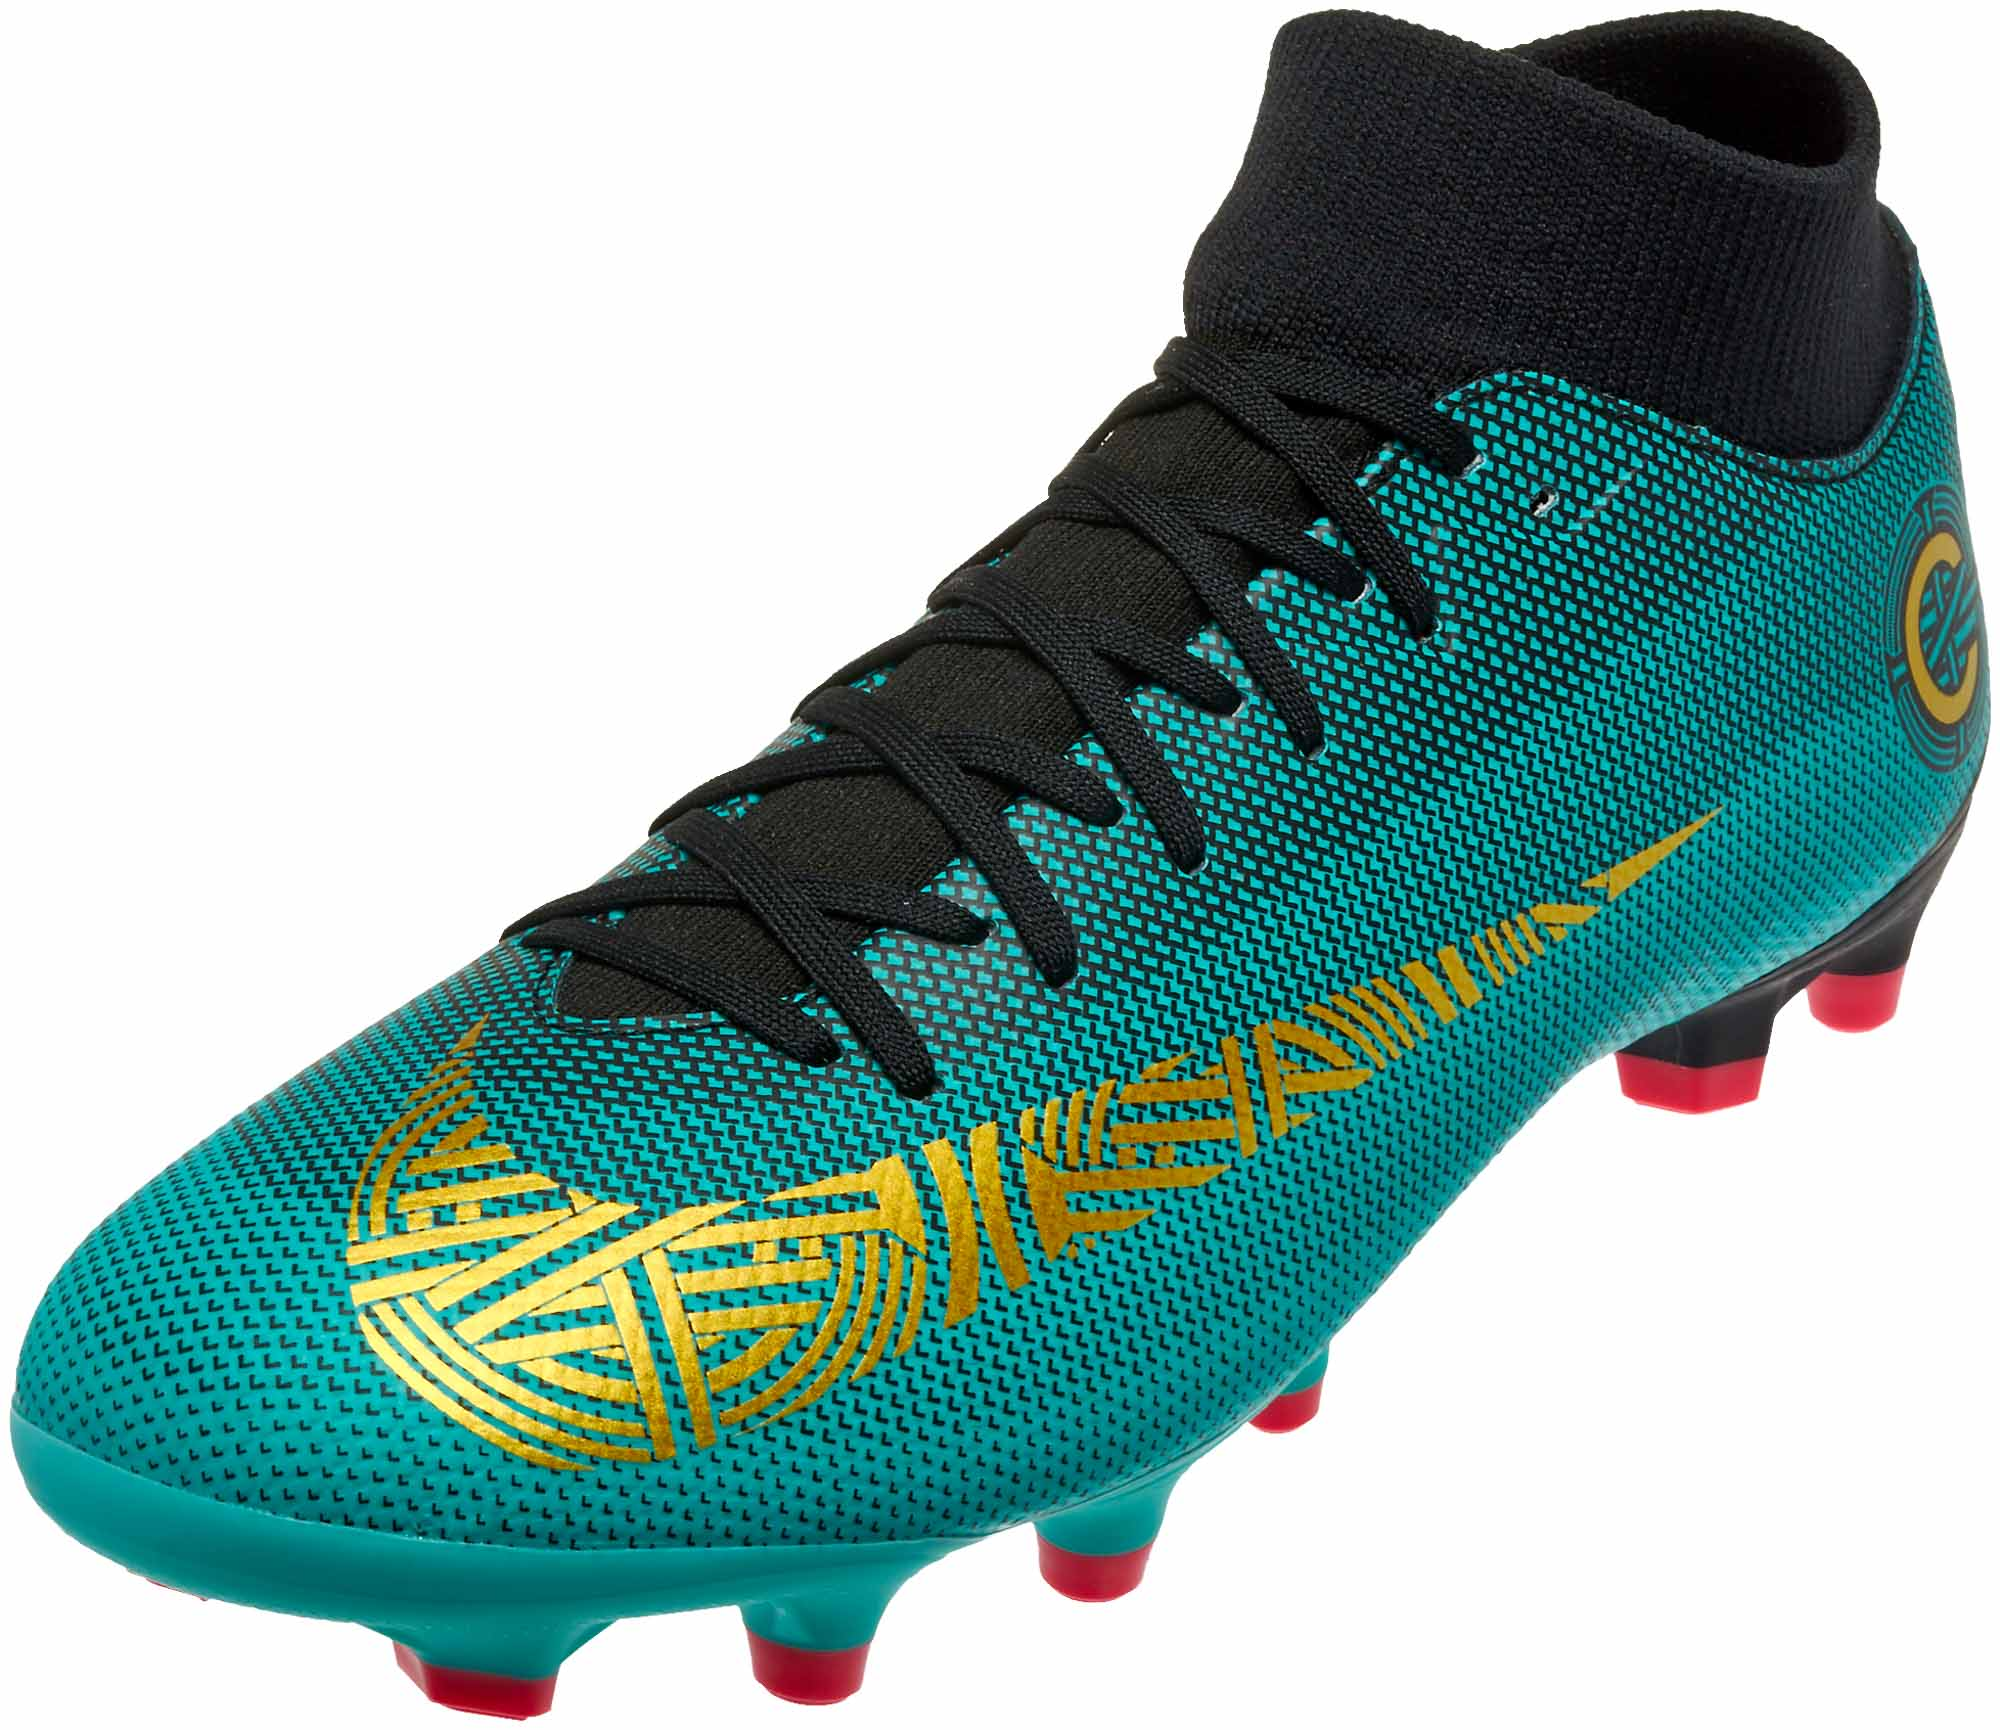 458ec648a Nike Mercurial Superfly 6 Academy MG – CR7 – Clear Jade/Metallic Vivid Gold